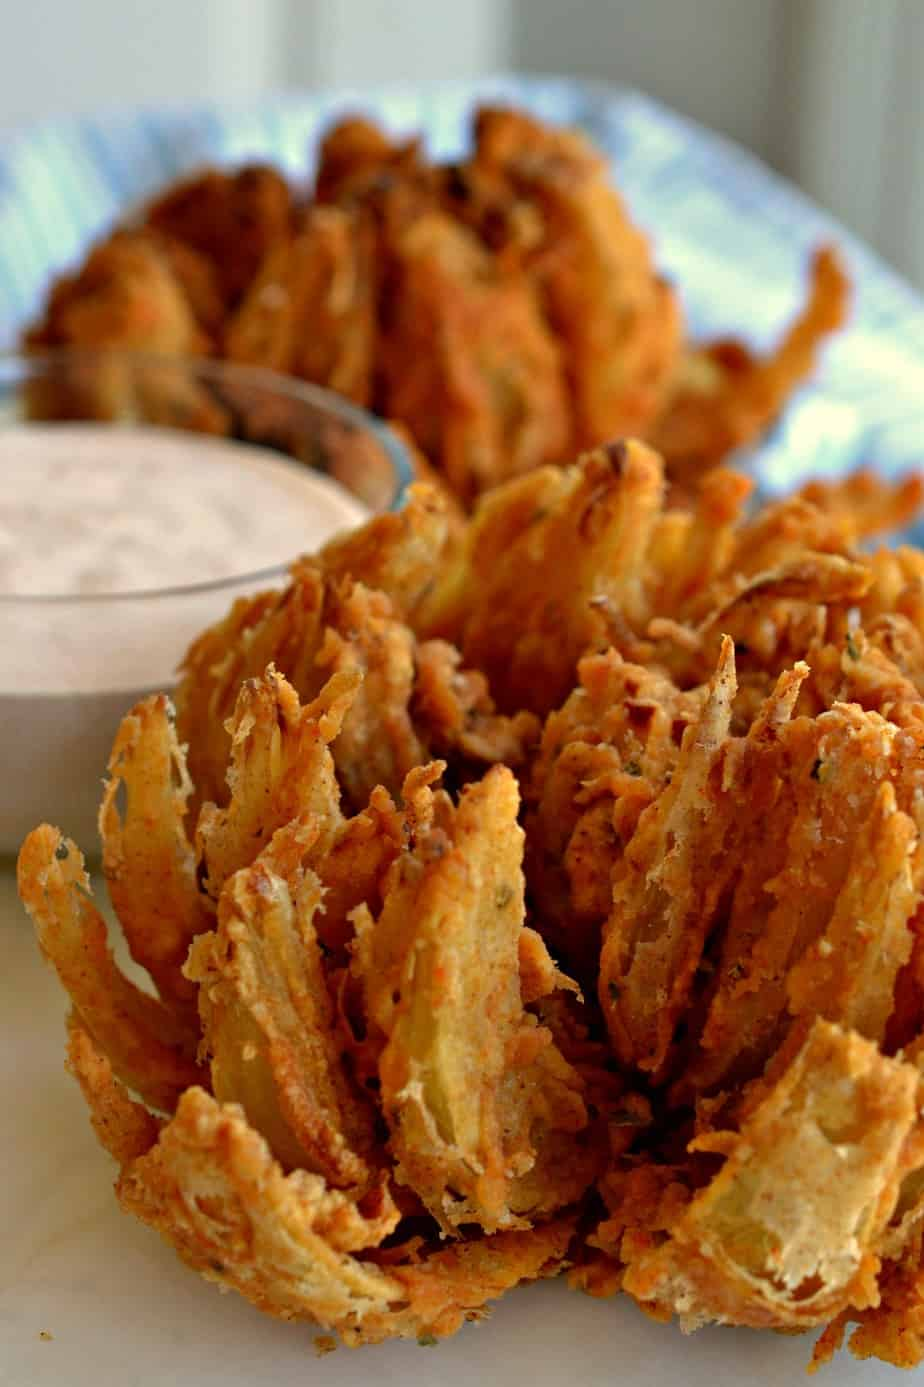 Make a delicious blooming onion for your family today and don't forget the tasty dipping sauce.